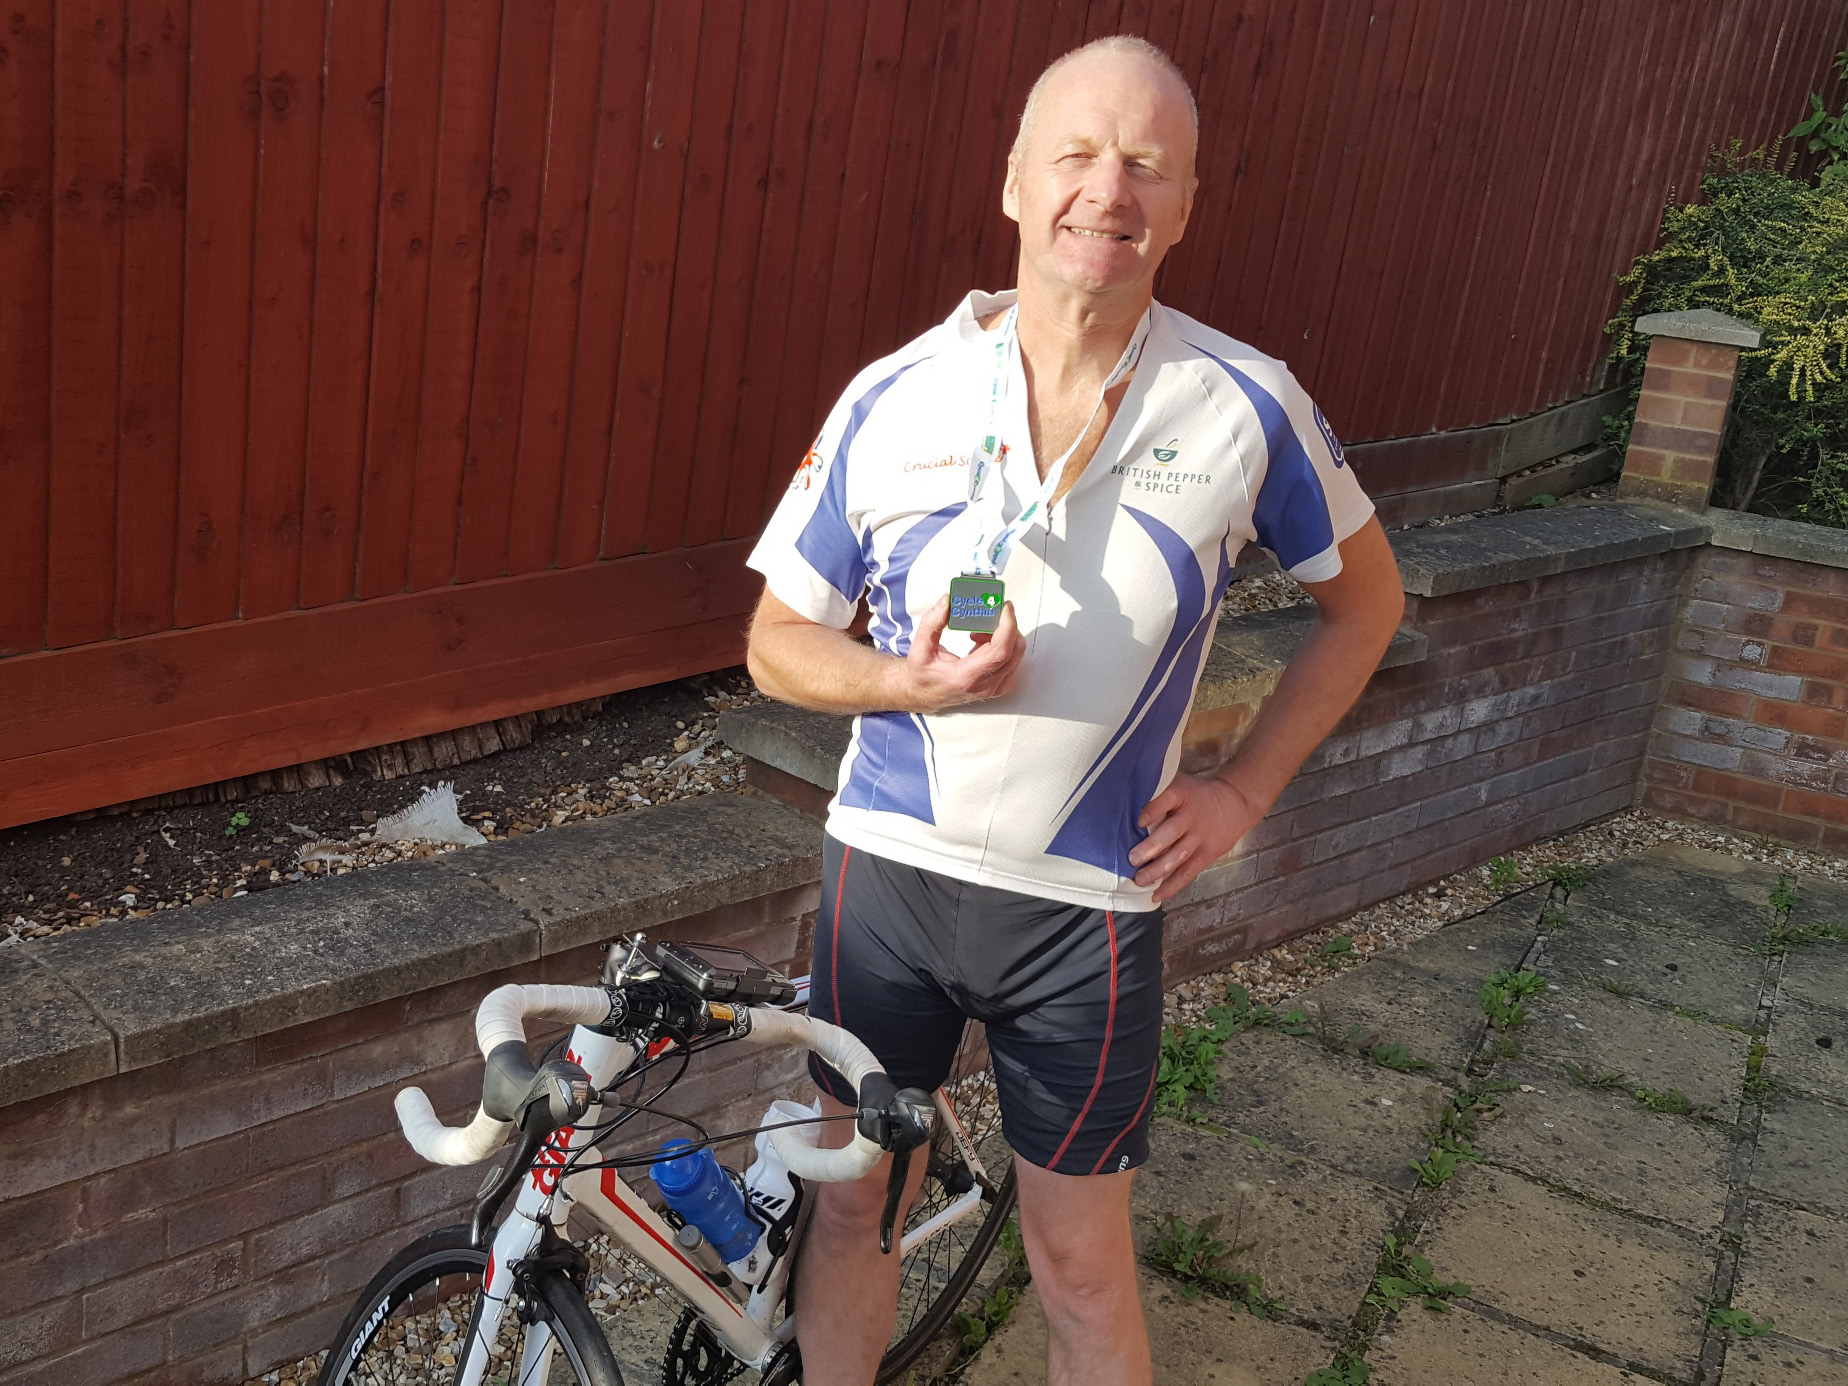 Michael proudly sports his C4C 2020 medal